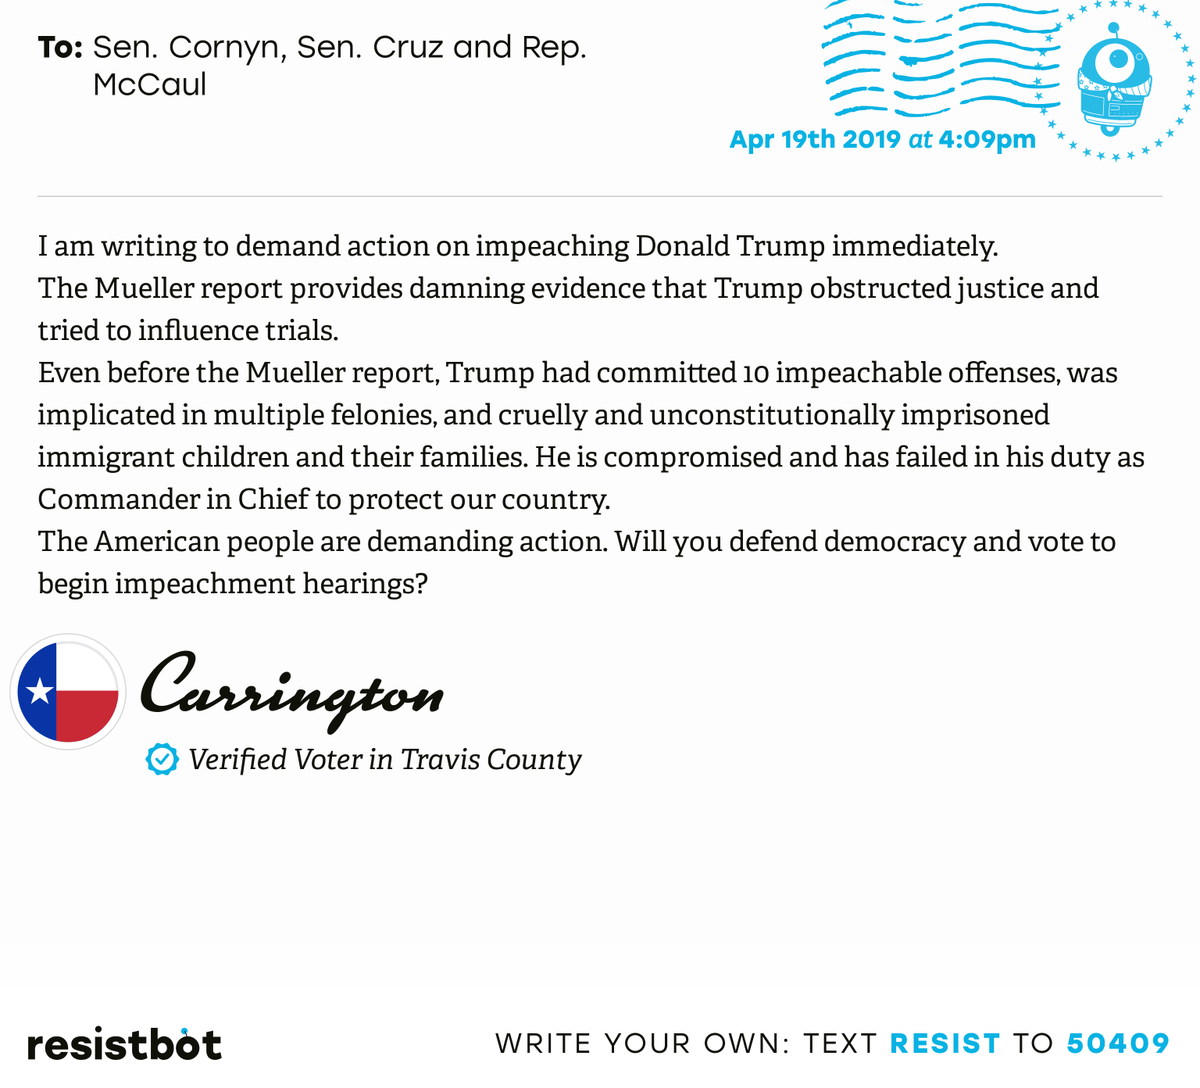 I just delivered this letter from Carrington in Austin, Texas to @JohnCornyn, @SenTedCruz and @RepMcCaul #txpols #txpolitics #ReleaseTheReport